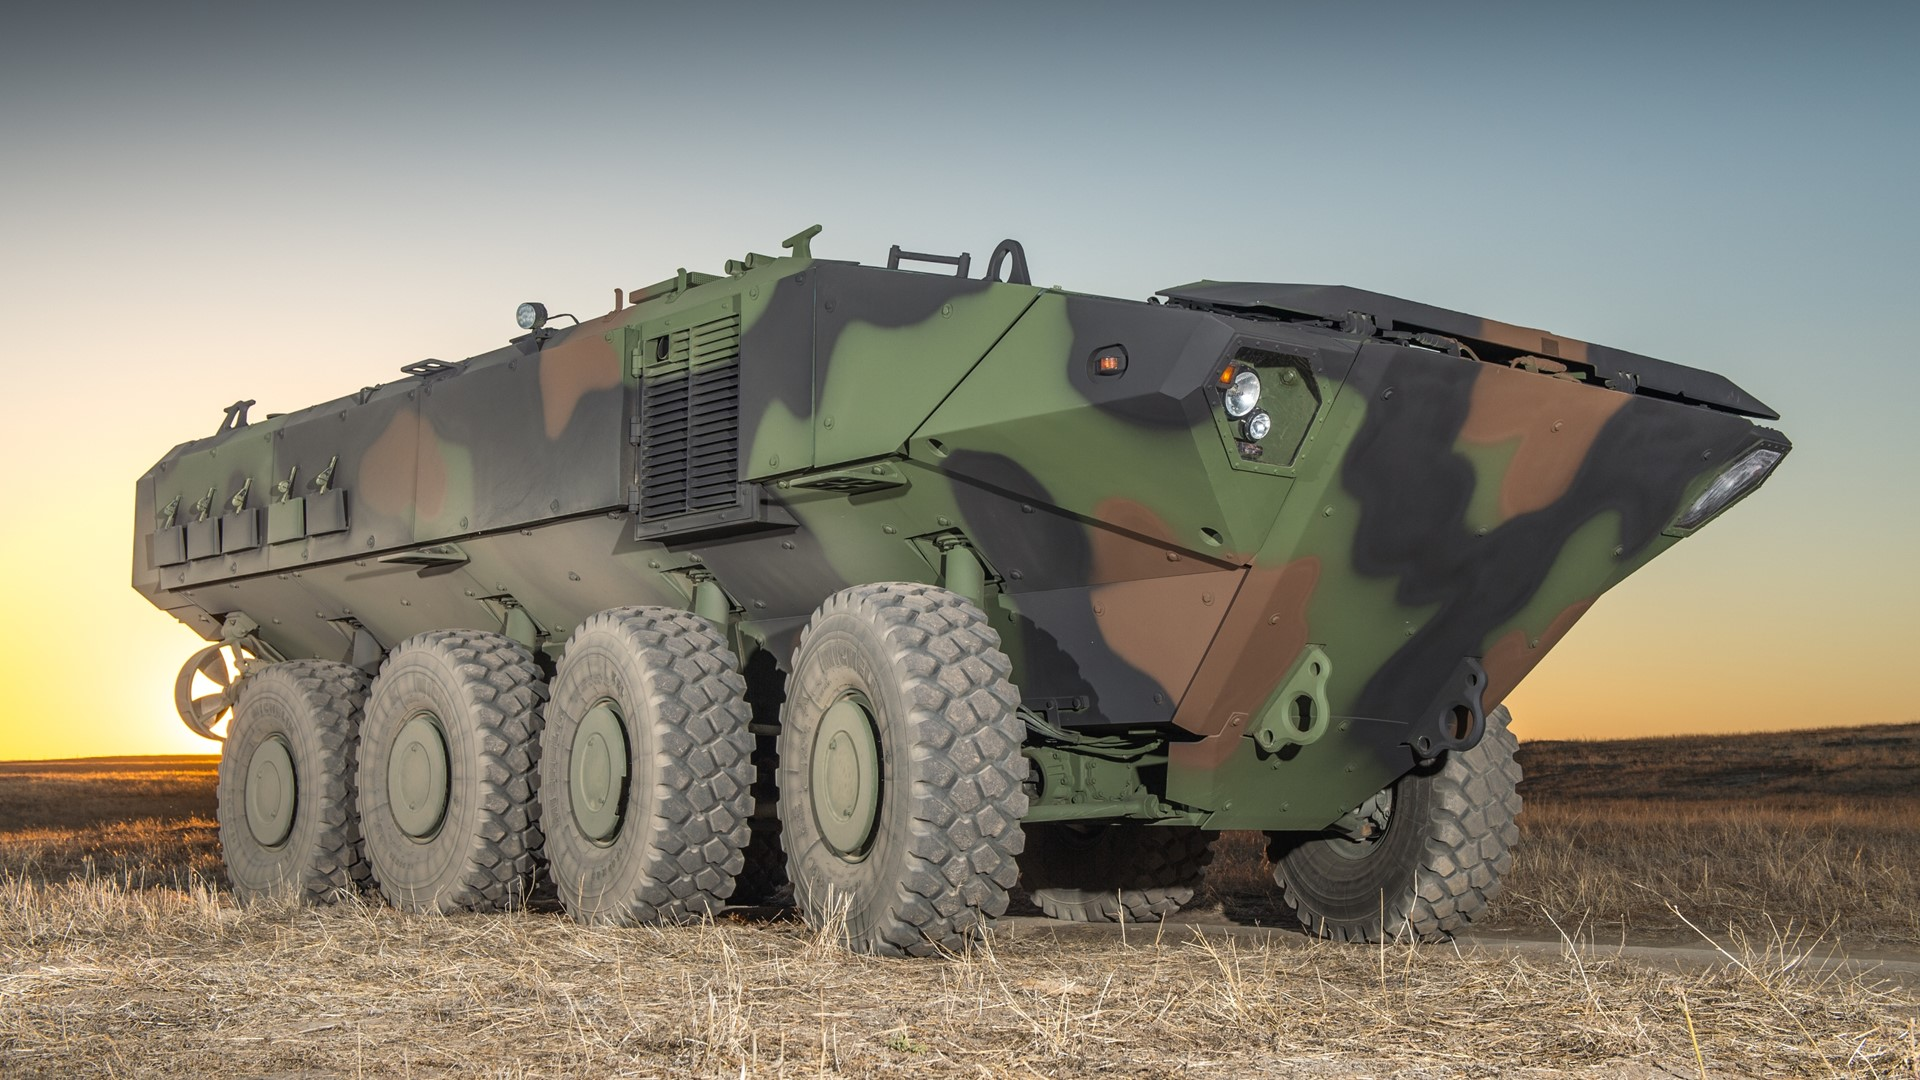 The Amphibious Armoured Platform By Iveco Defence Vehicles Is Adopted By Bae Systems For The Acv 1 1 Program Development Contract Awarded By U S Marine Corps